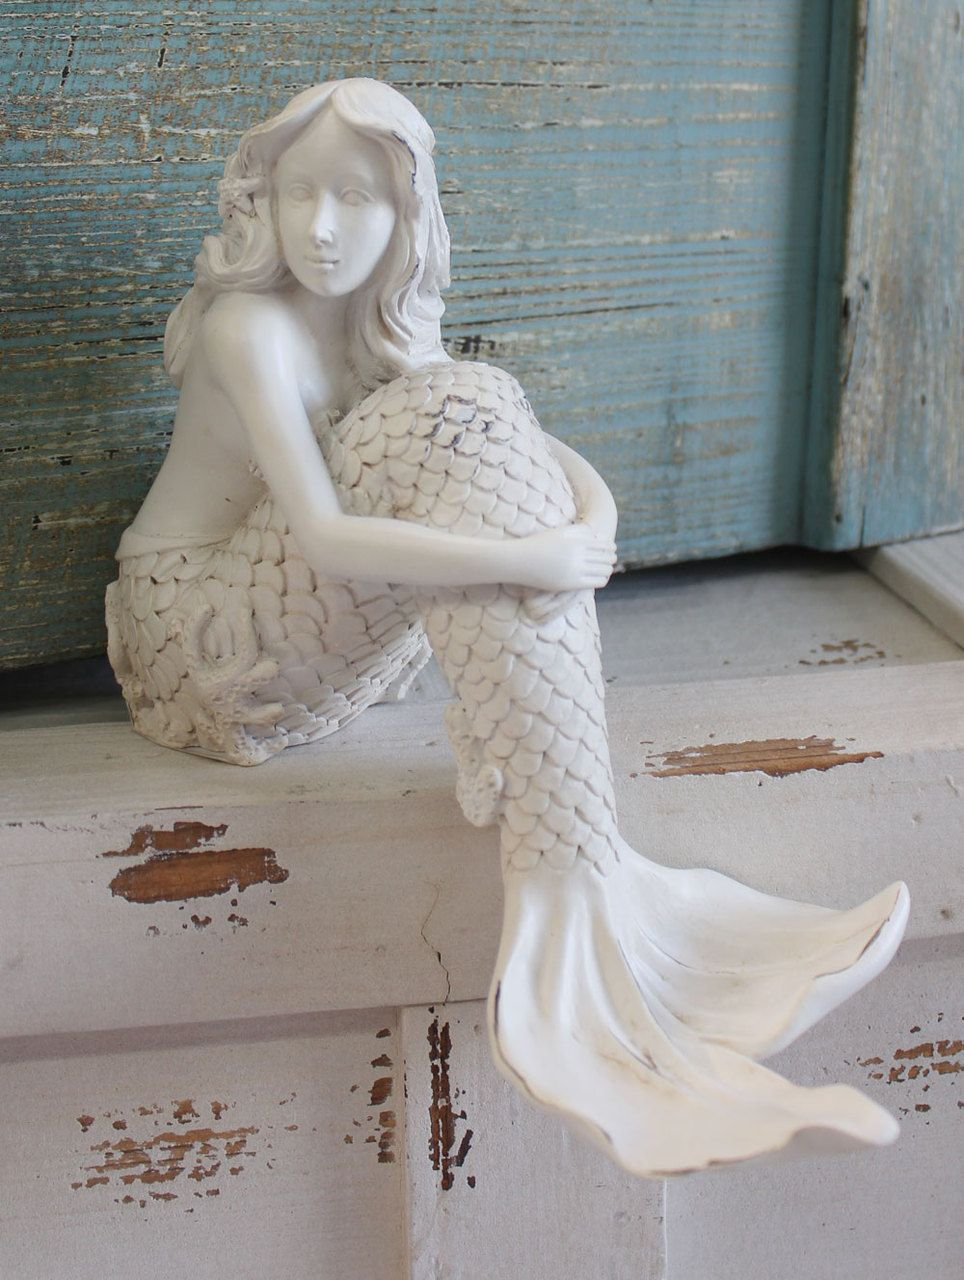 Mermaid shelf sitter resin figurine discover best ideas about nautical bedroom - Mermaid decor bathroom ...